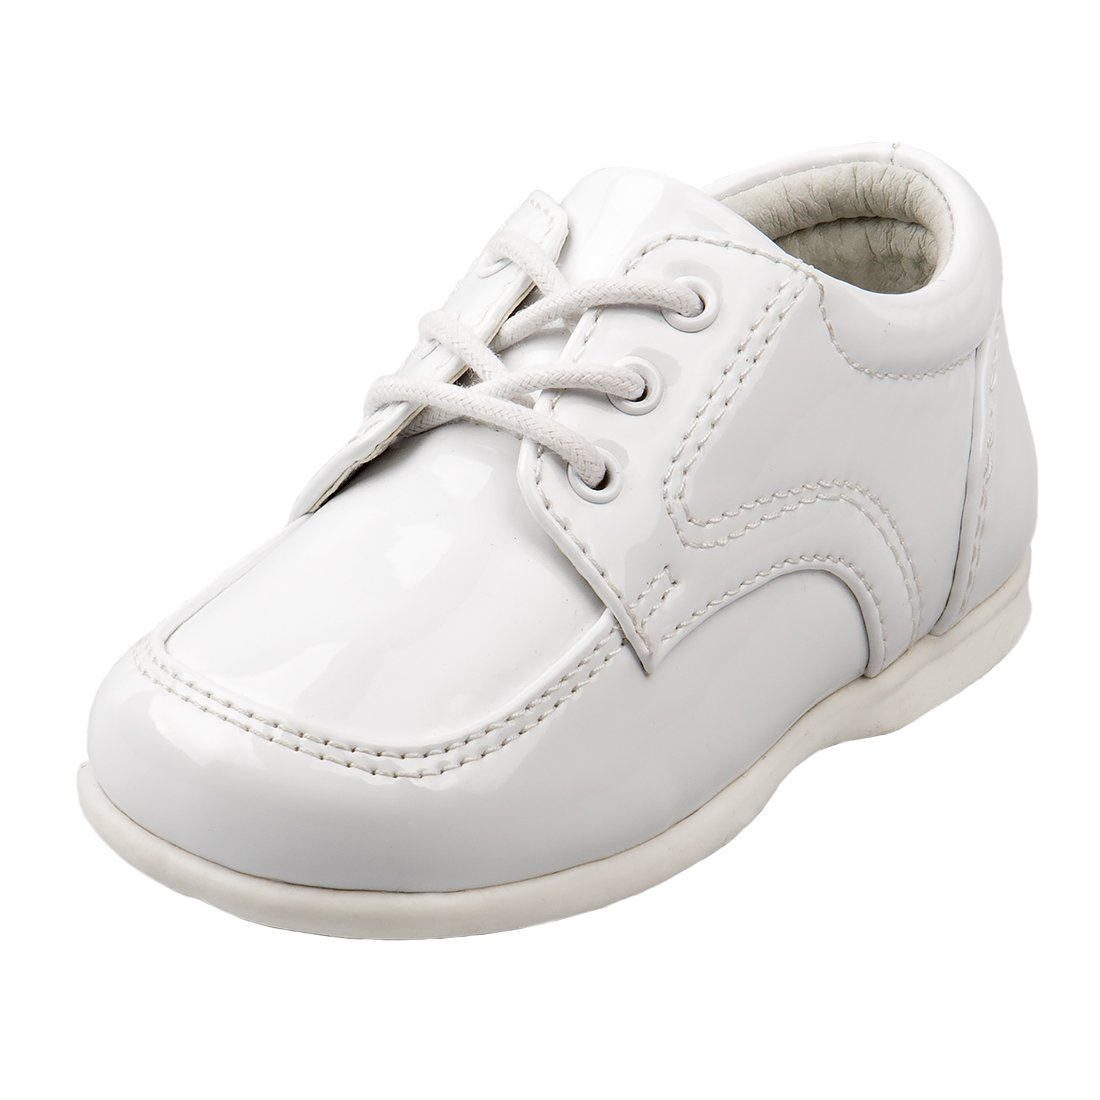 1c7dc4cdabd53 Josmo Baby Boy's First Steps Walking Dress Shoe, White Patent, 6 M ...